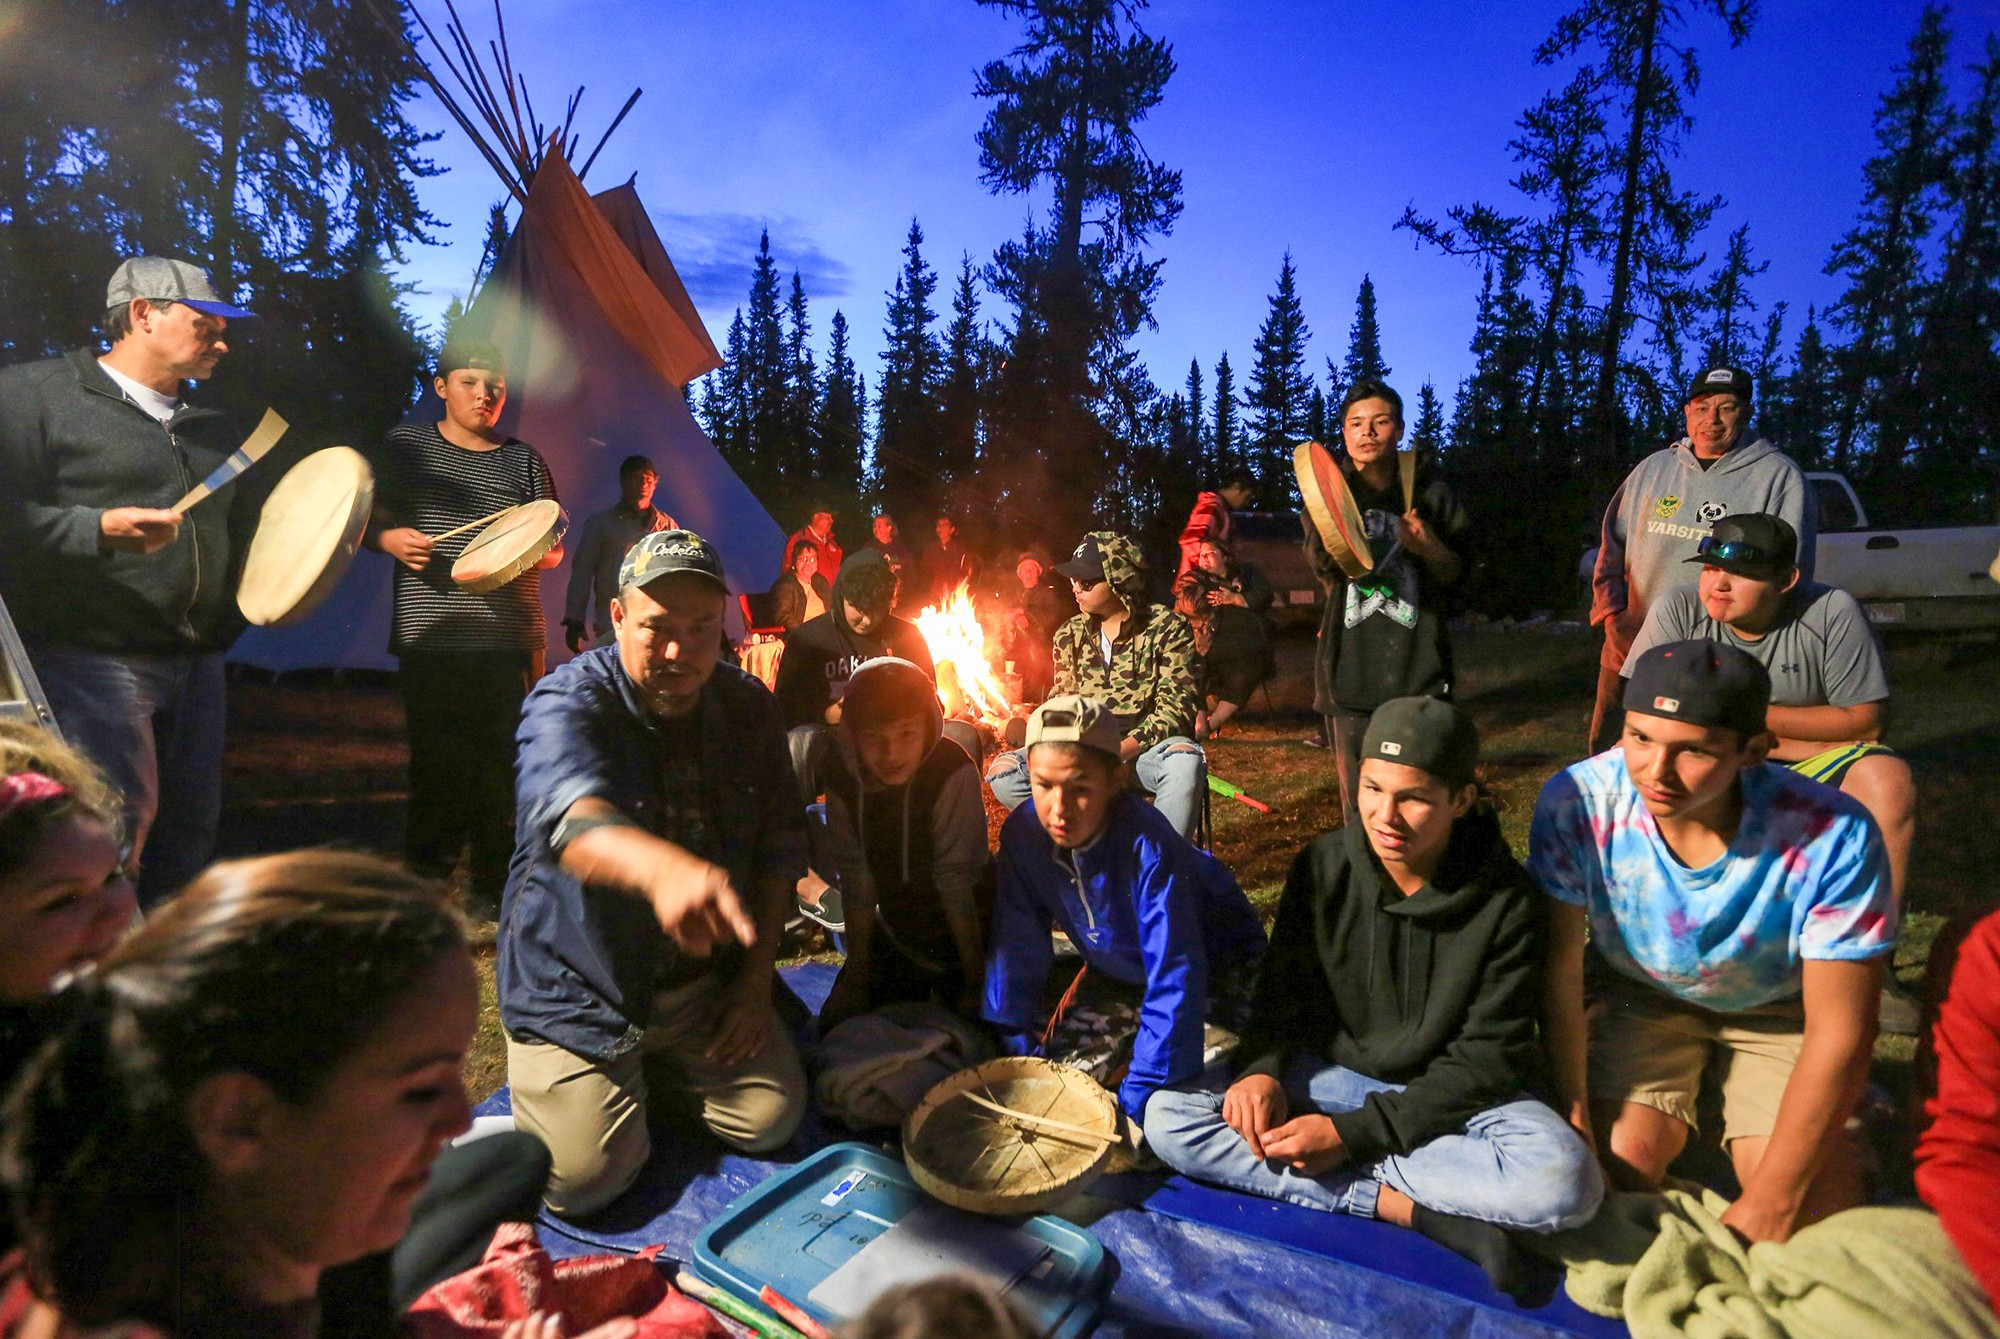 group of people outdoors at night with teepee and campfire in background